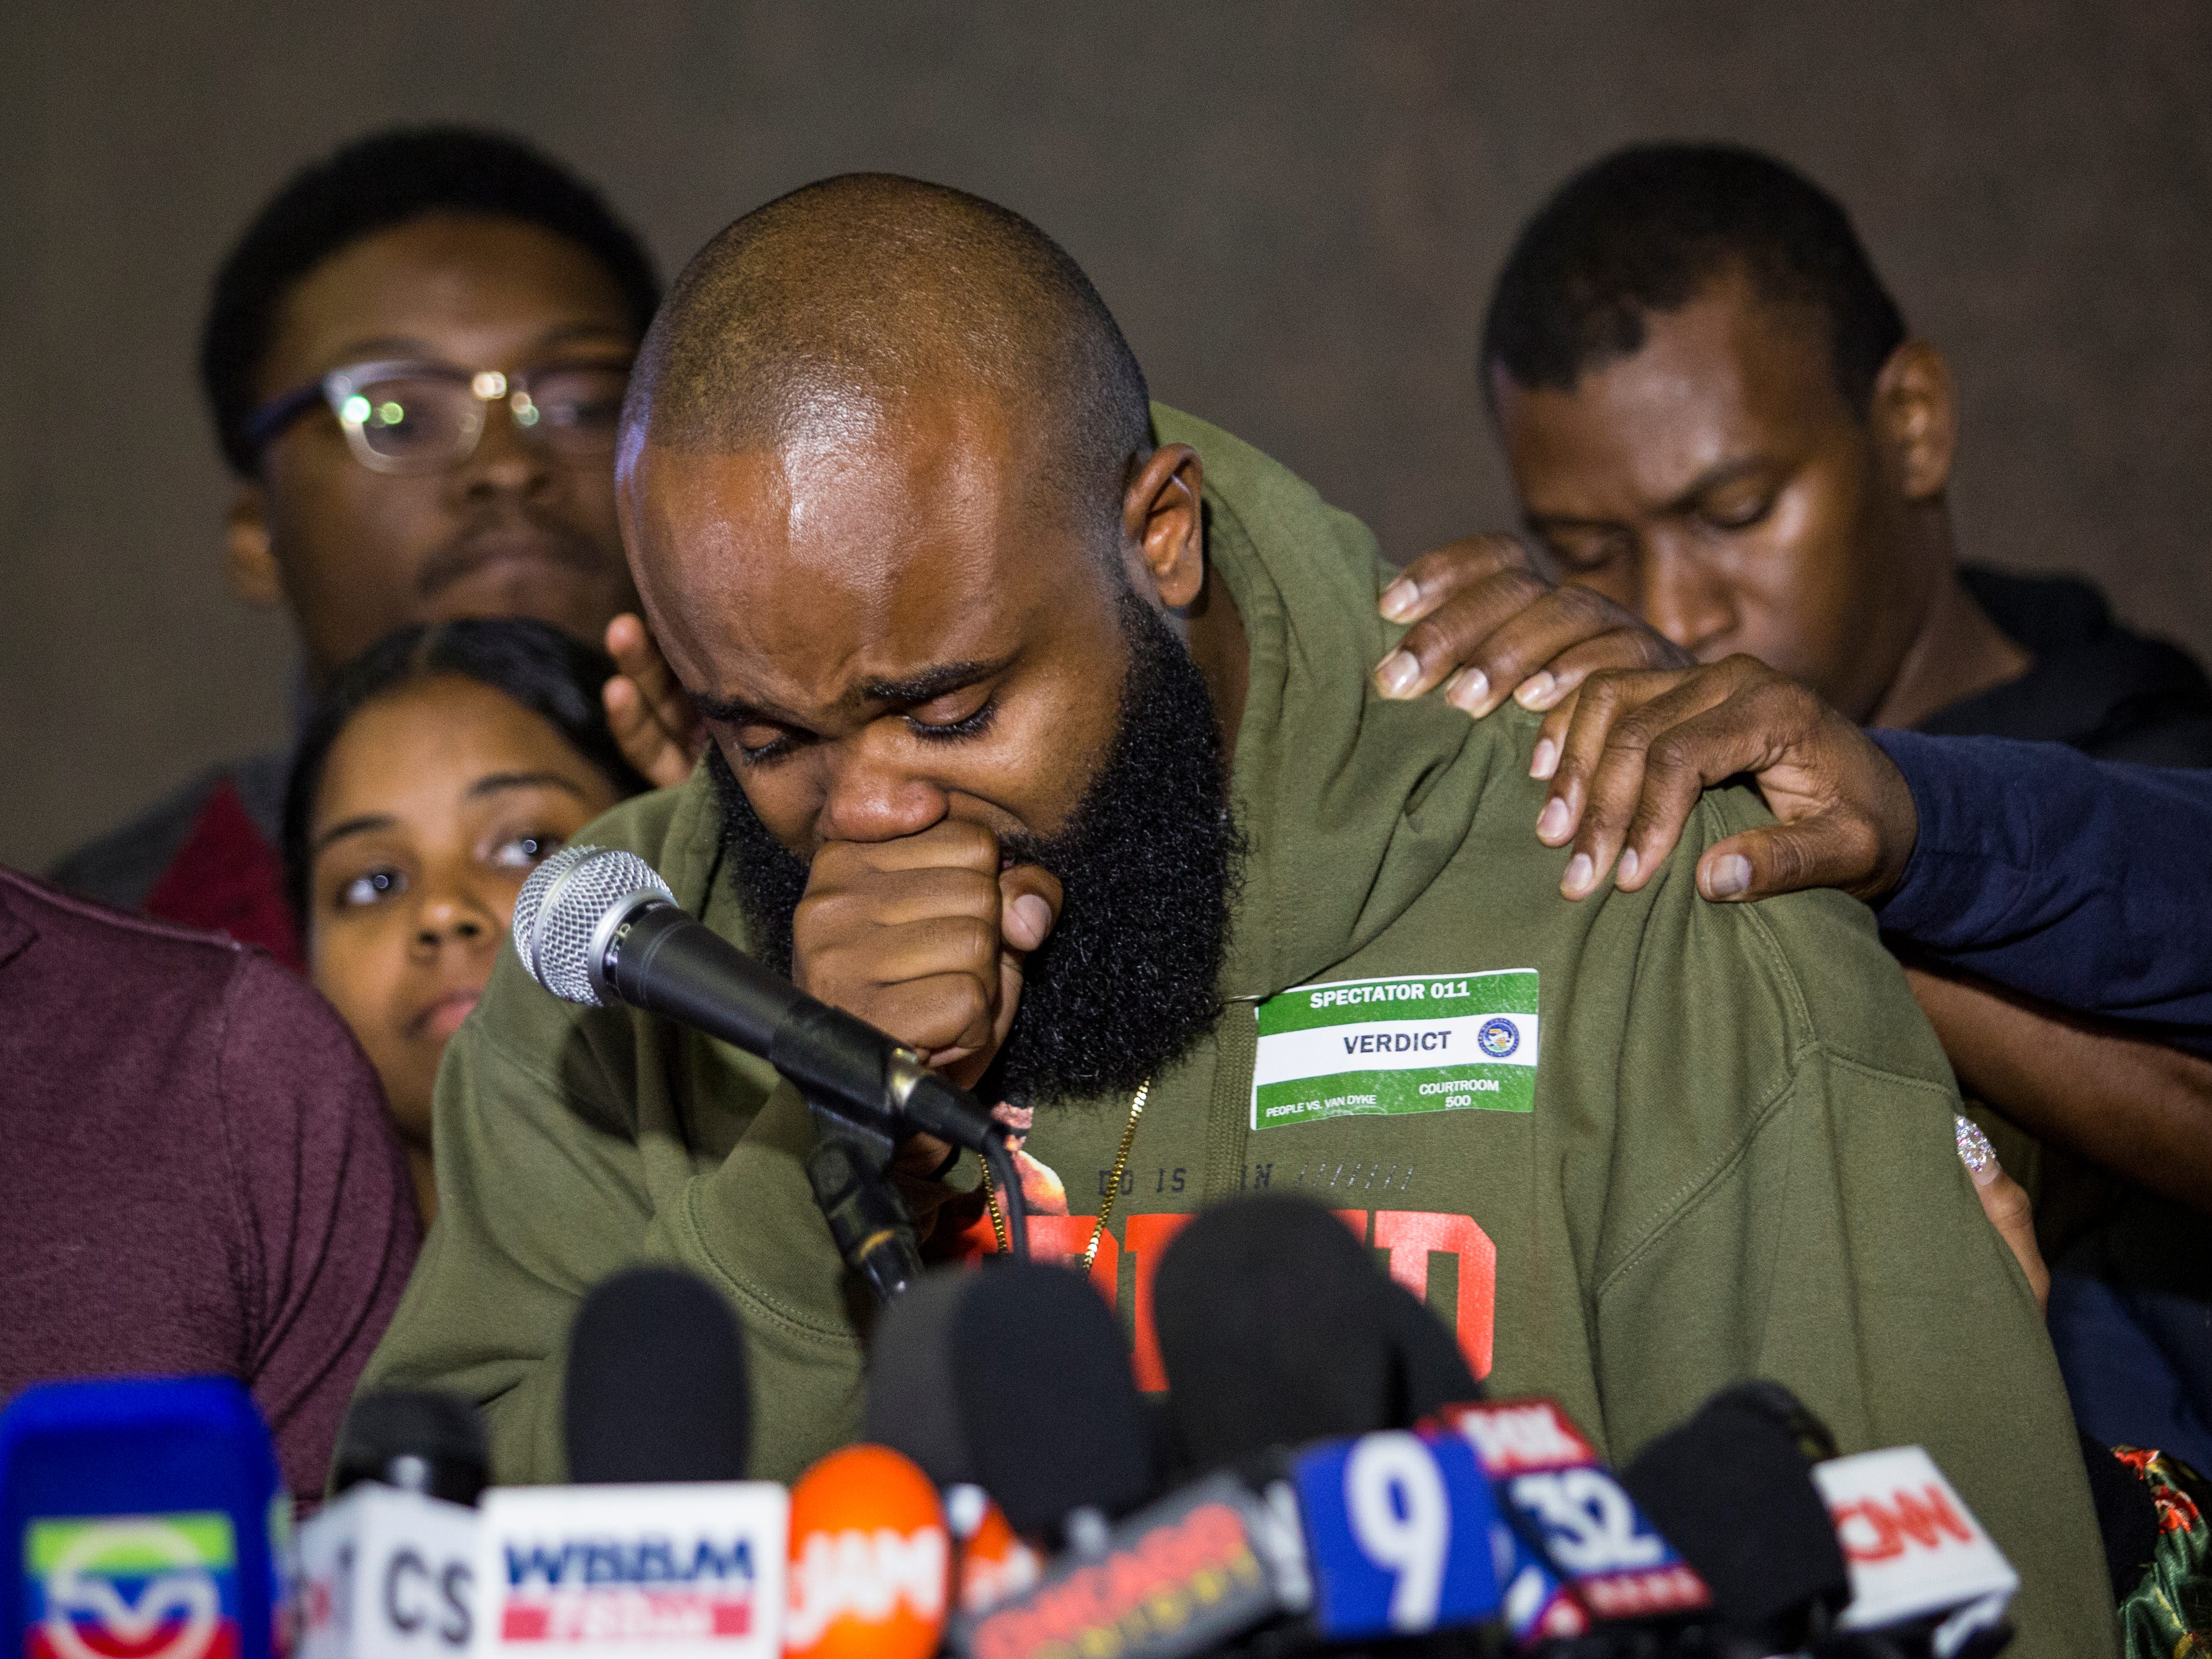 Chicago community activist William Calloway gets emotional after a jury found former police officer Jason Van Dyke guilty of second-degree murder and aggravated battery in the 2014 shooting death of black teenager Laquan McDonald.